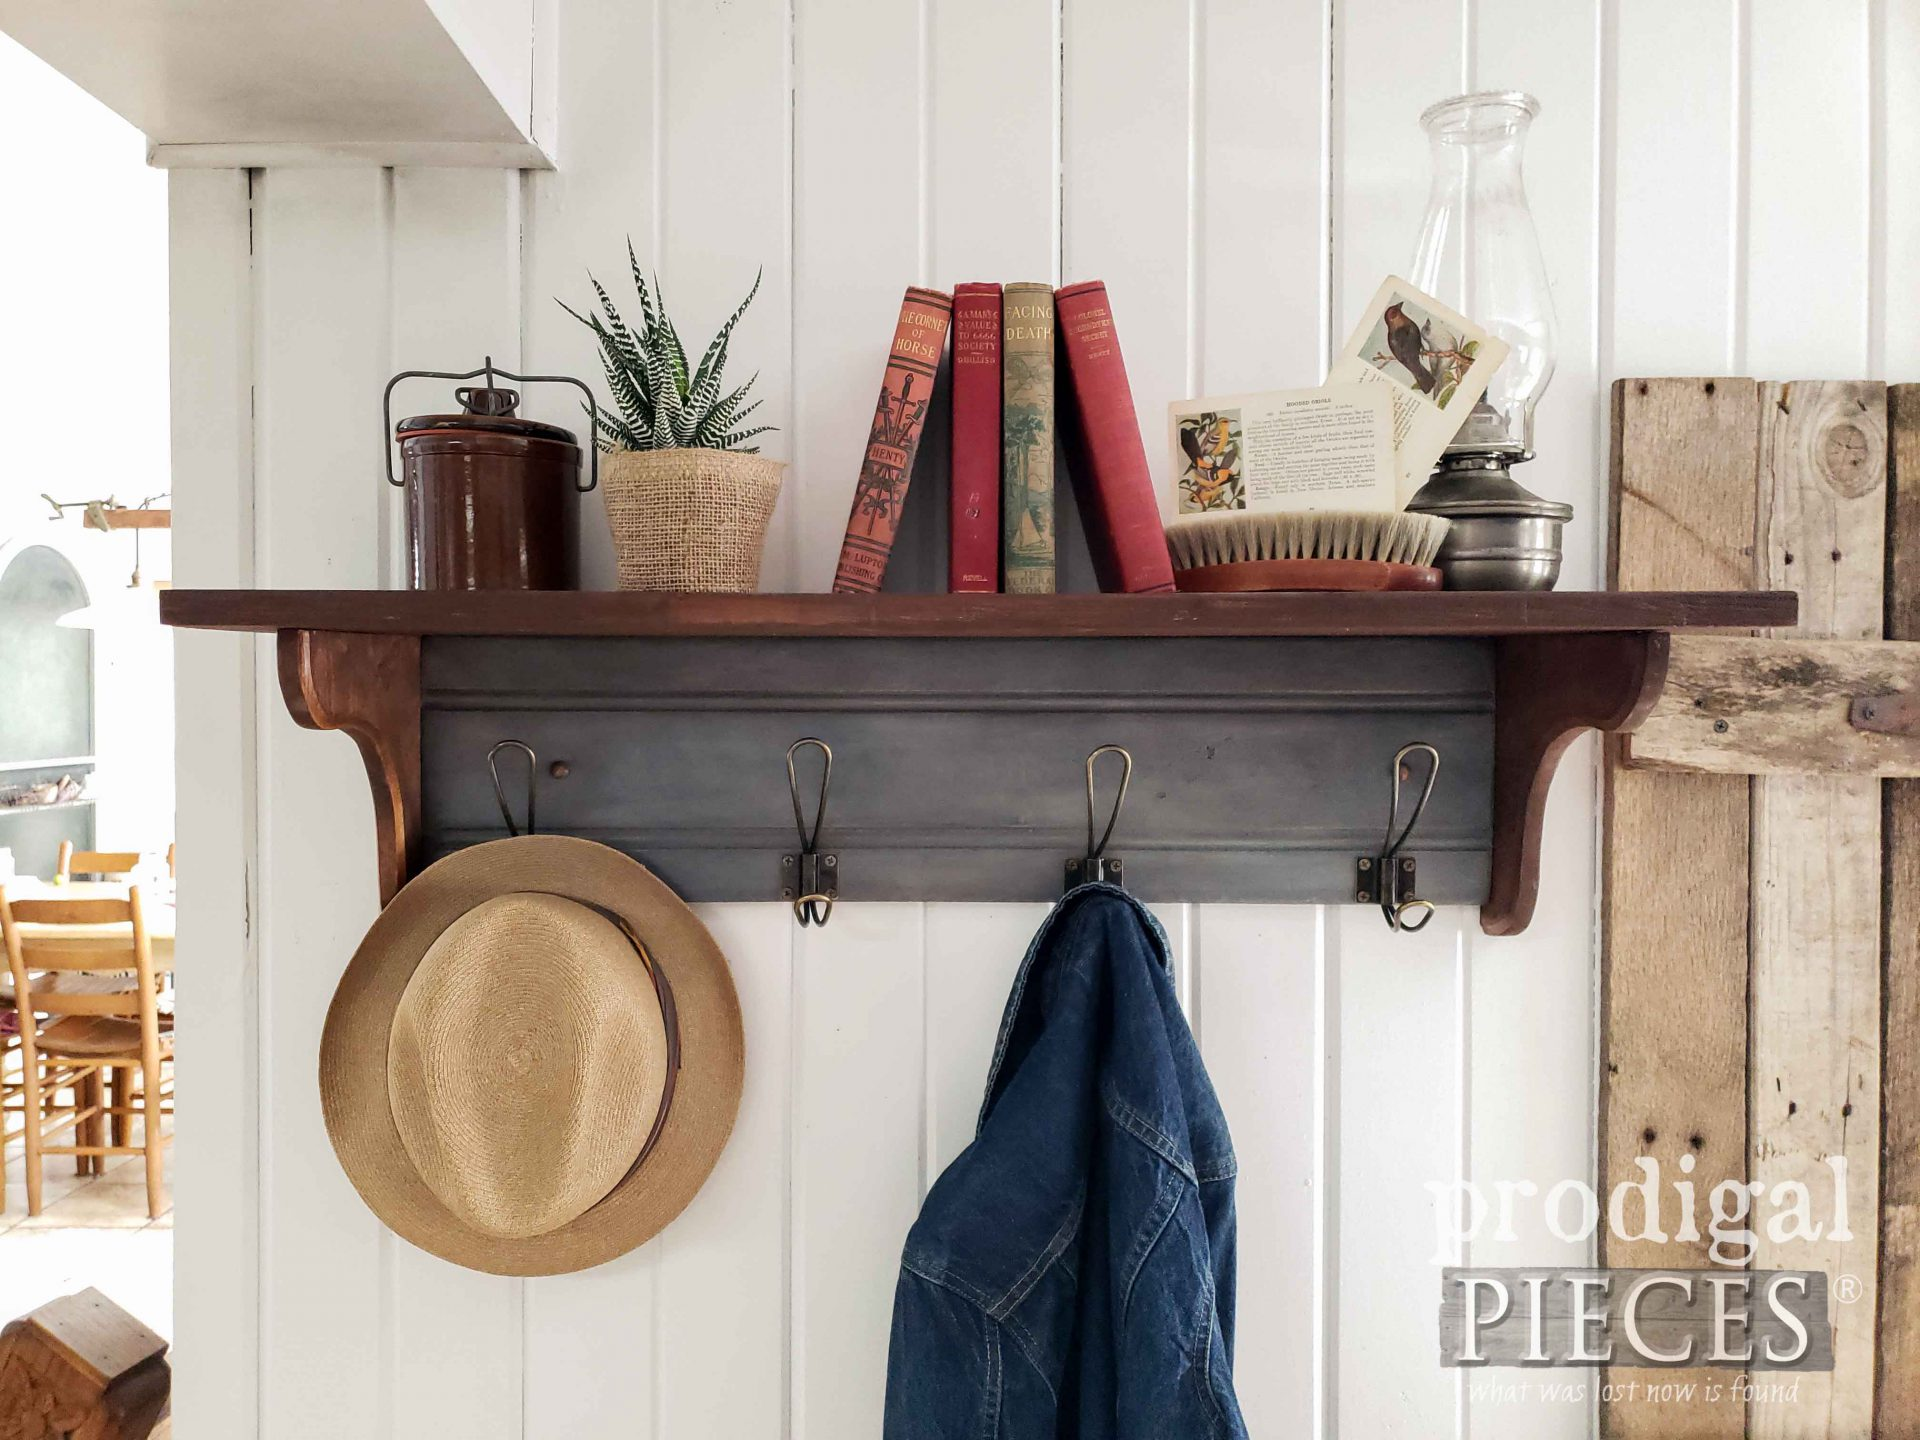 Rustic Farmhouse Style Coat Rack with Shelf for Home Decor by Larissa of Prodigal Pieces | prodigalpieces.com #prodigalpieces #diy #home #farmhouse #homedecor